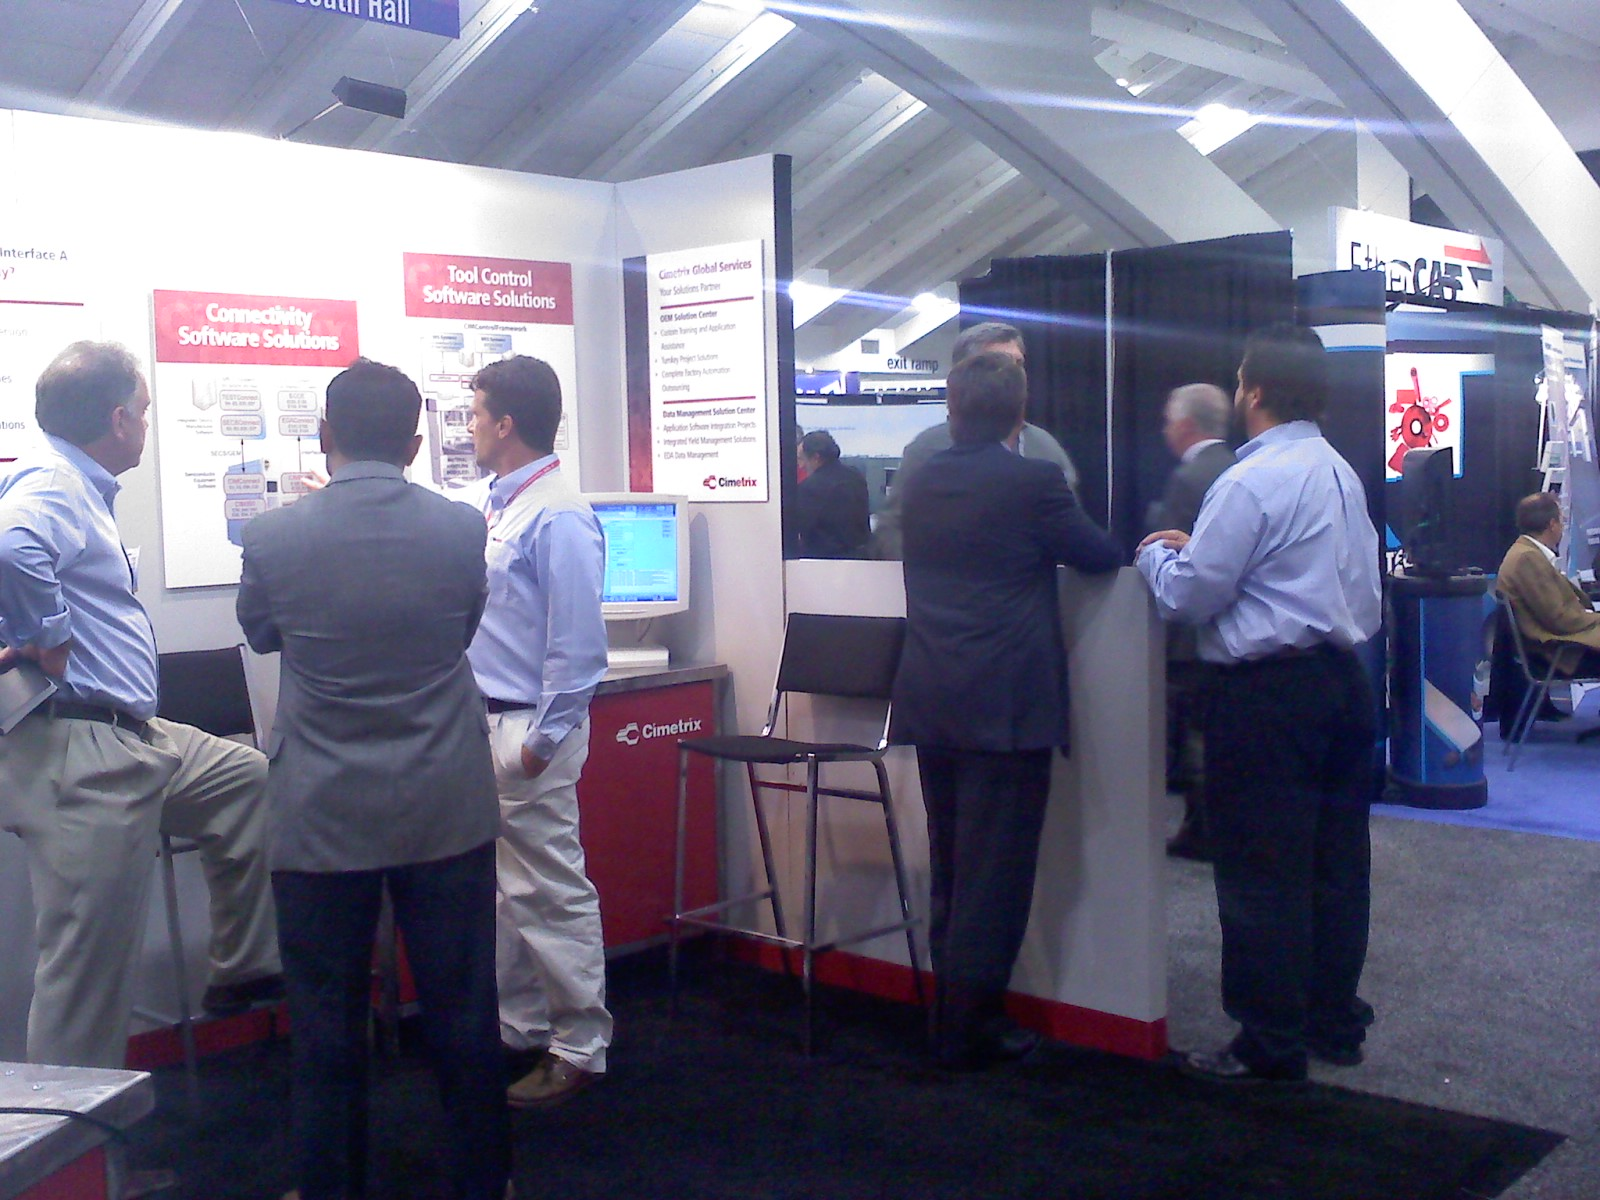 SEMICON West 2010 booth 2